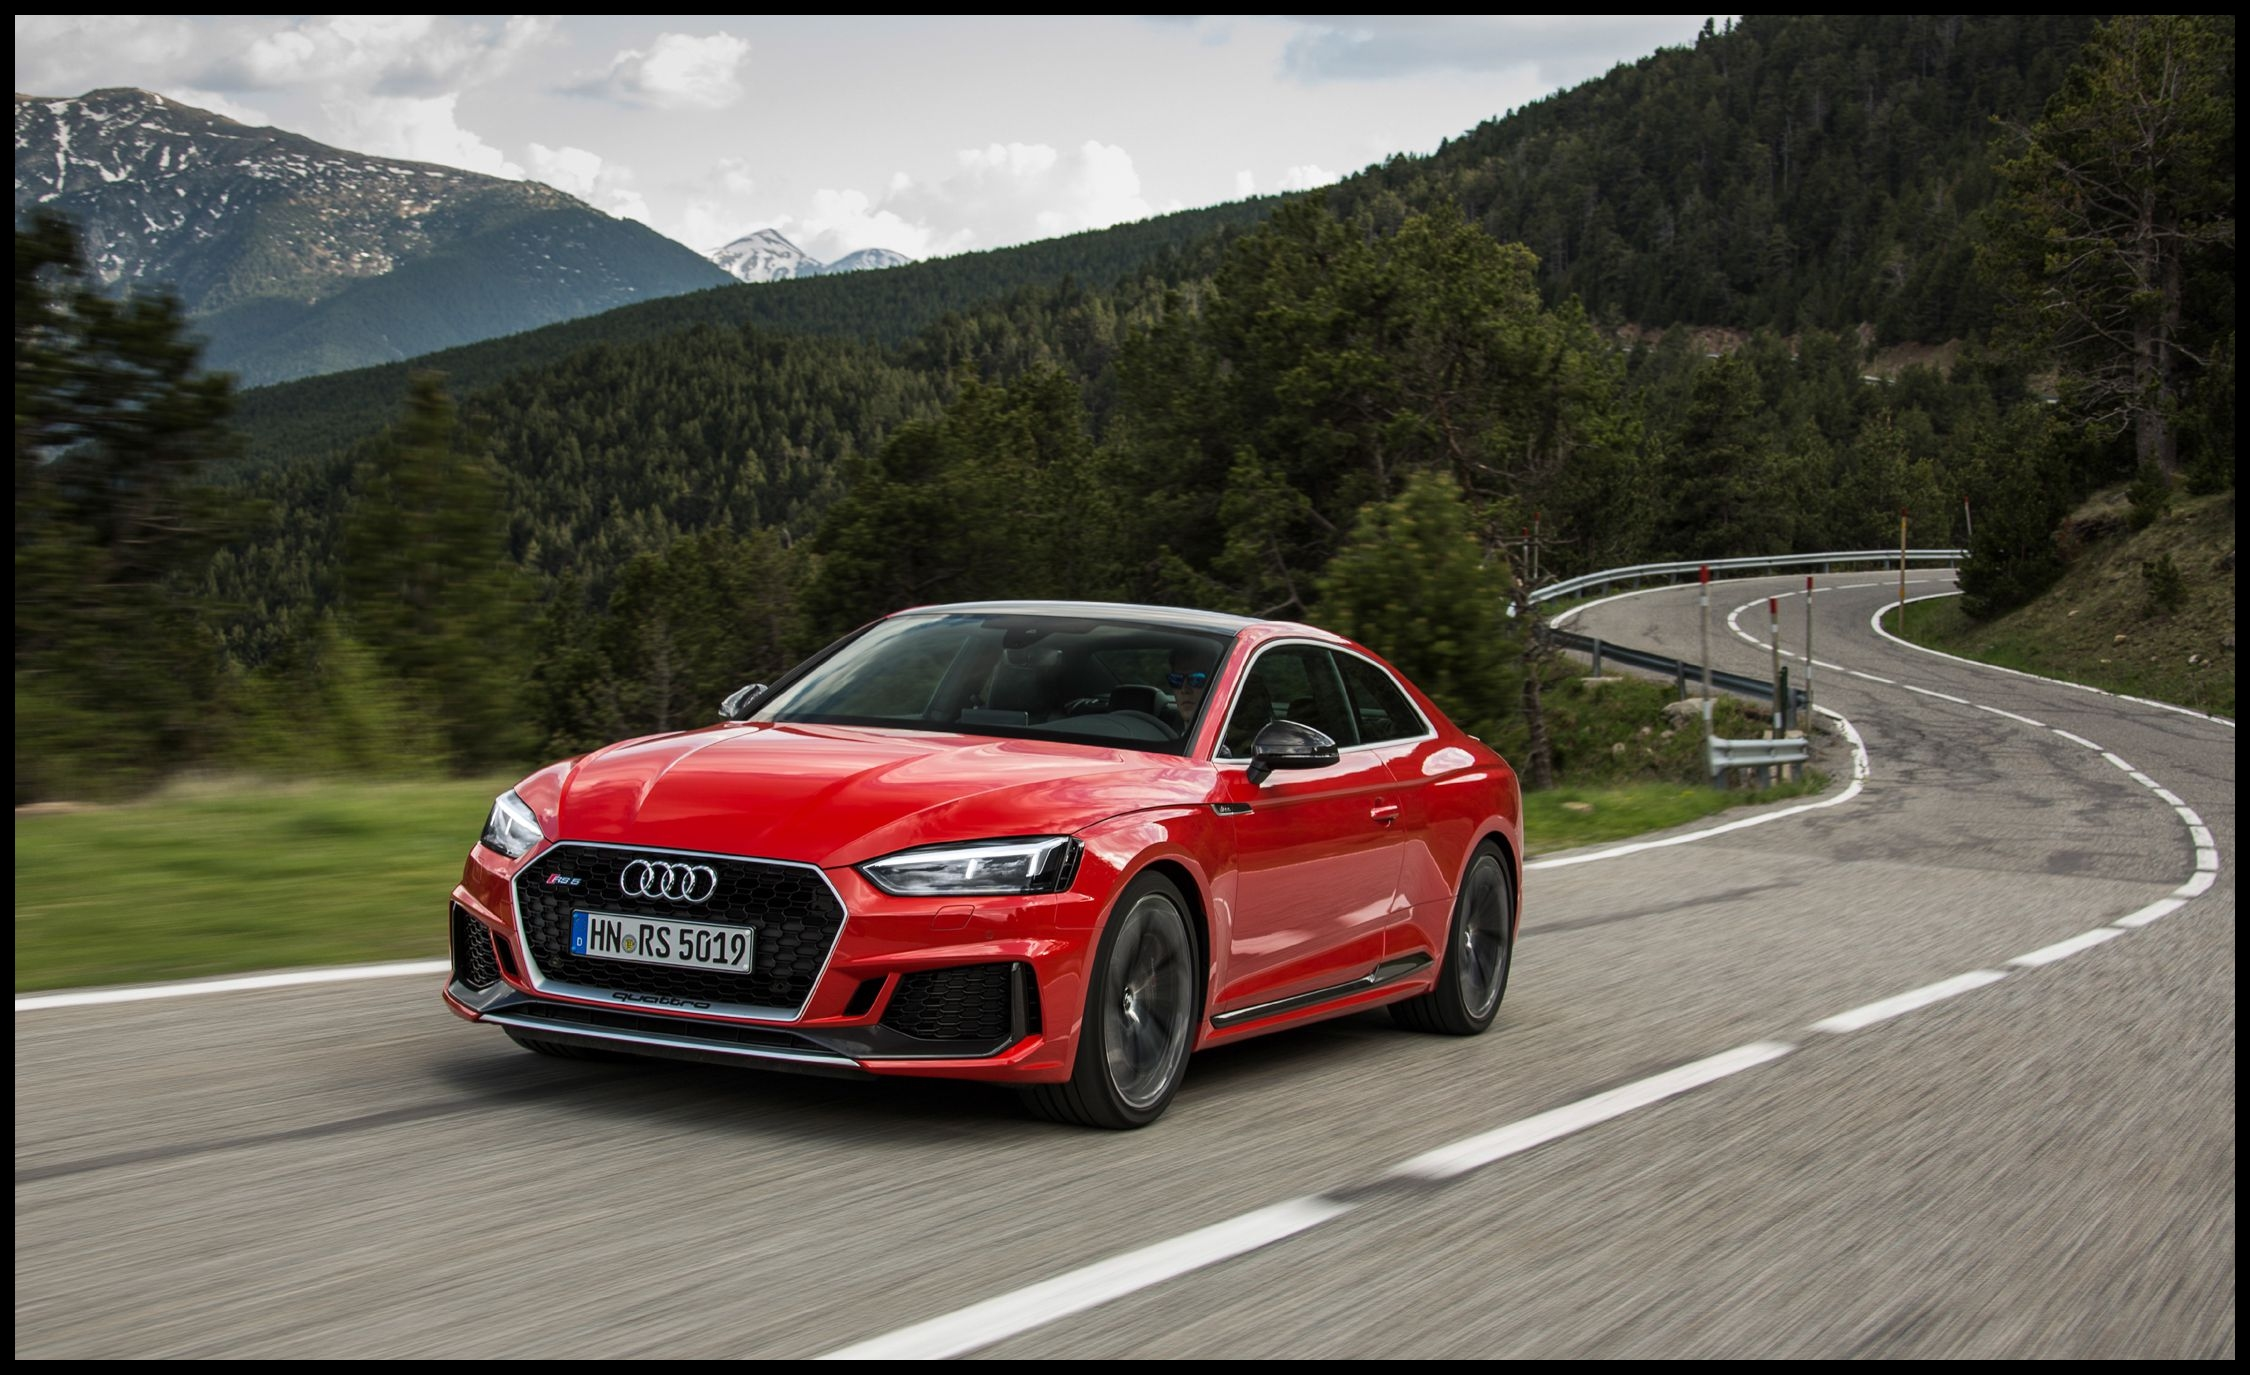 2018 Audi RS5 Coupe 112